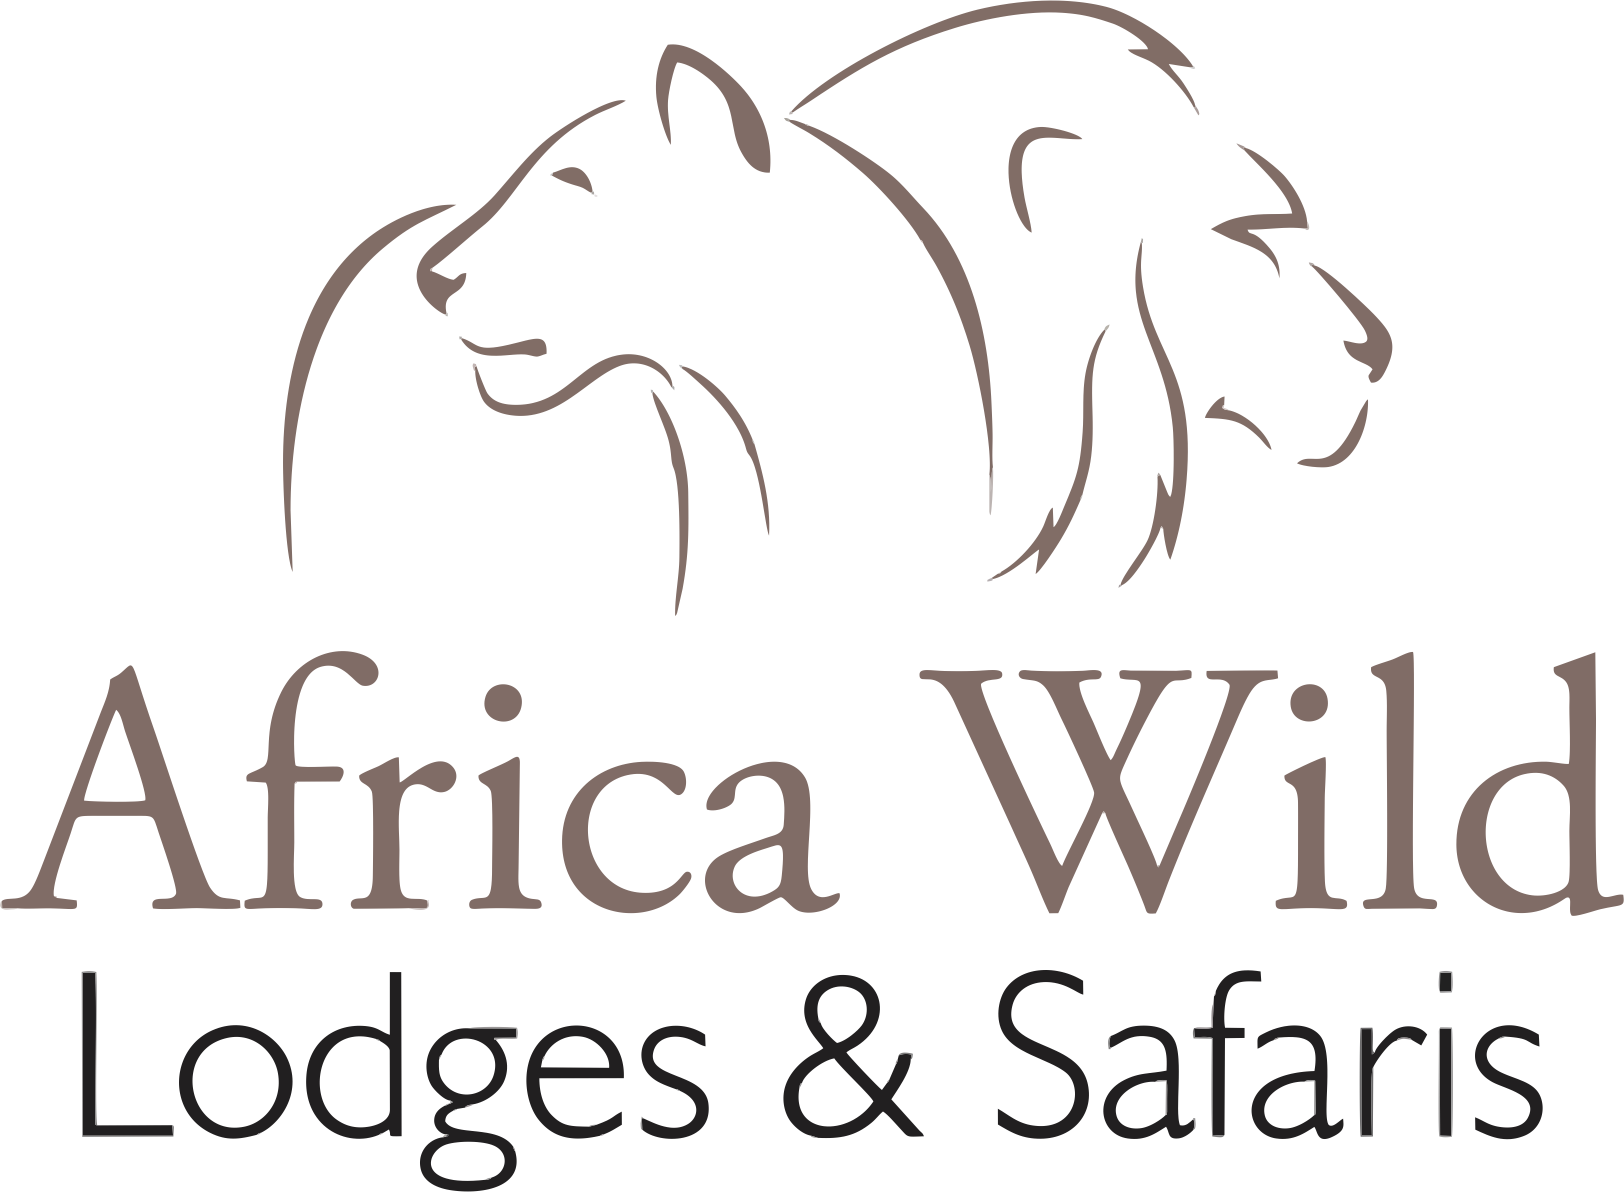 Africa Wild Lodges & Safaris